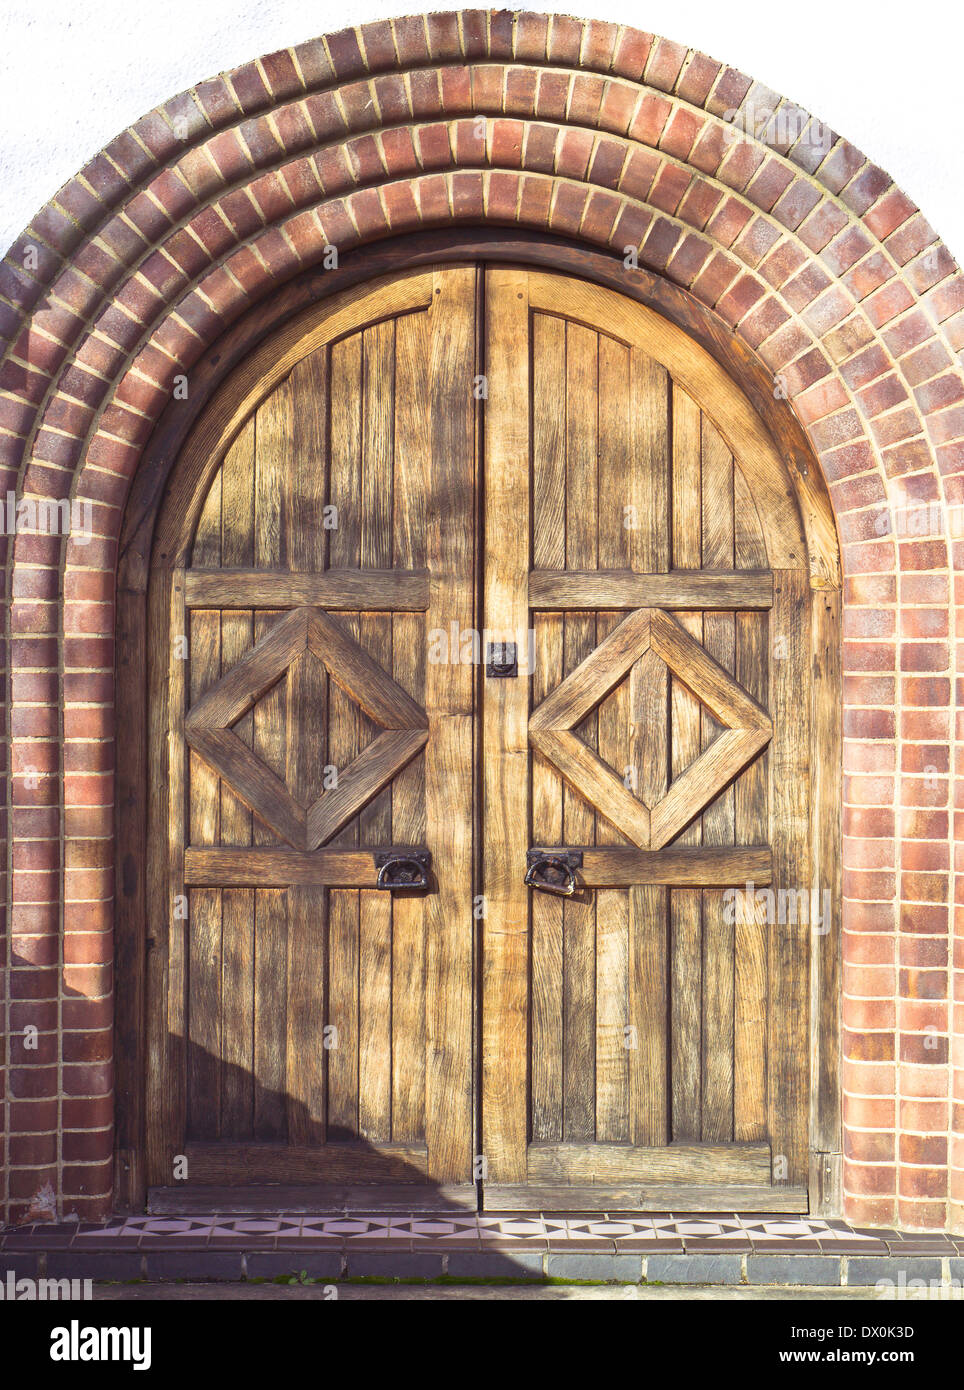 Archway and wooden double doorway in a house in the UK Stock Photo